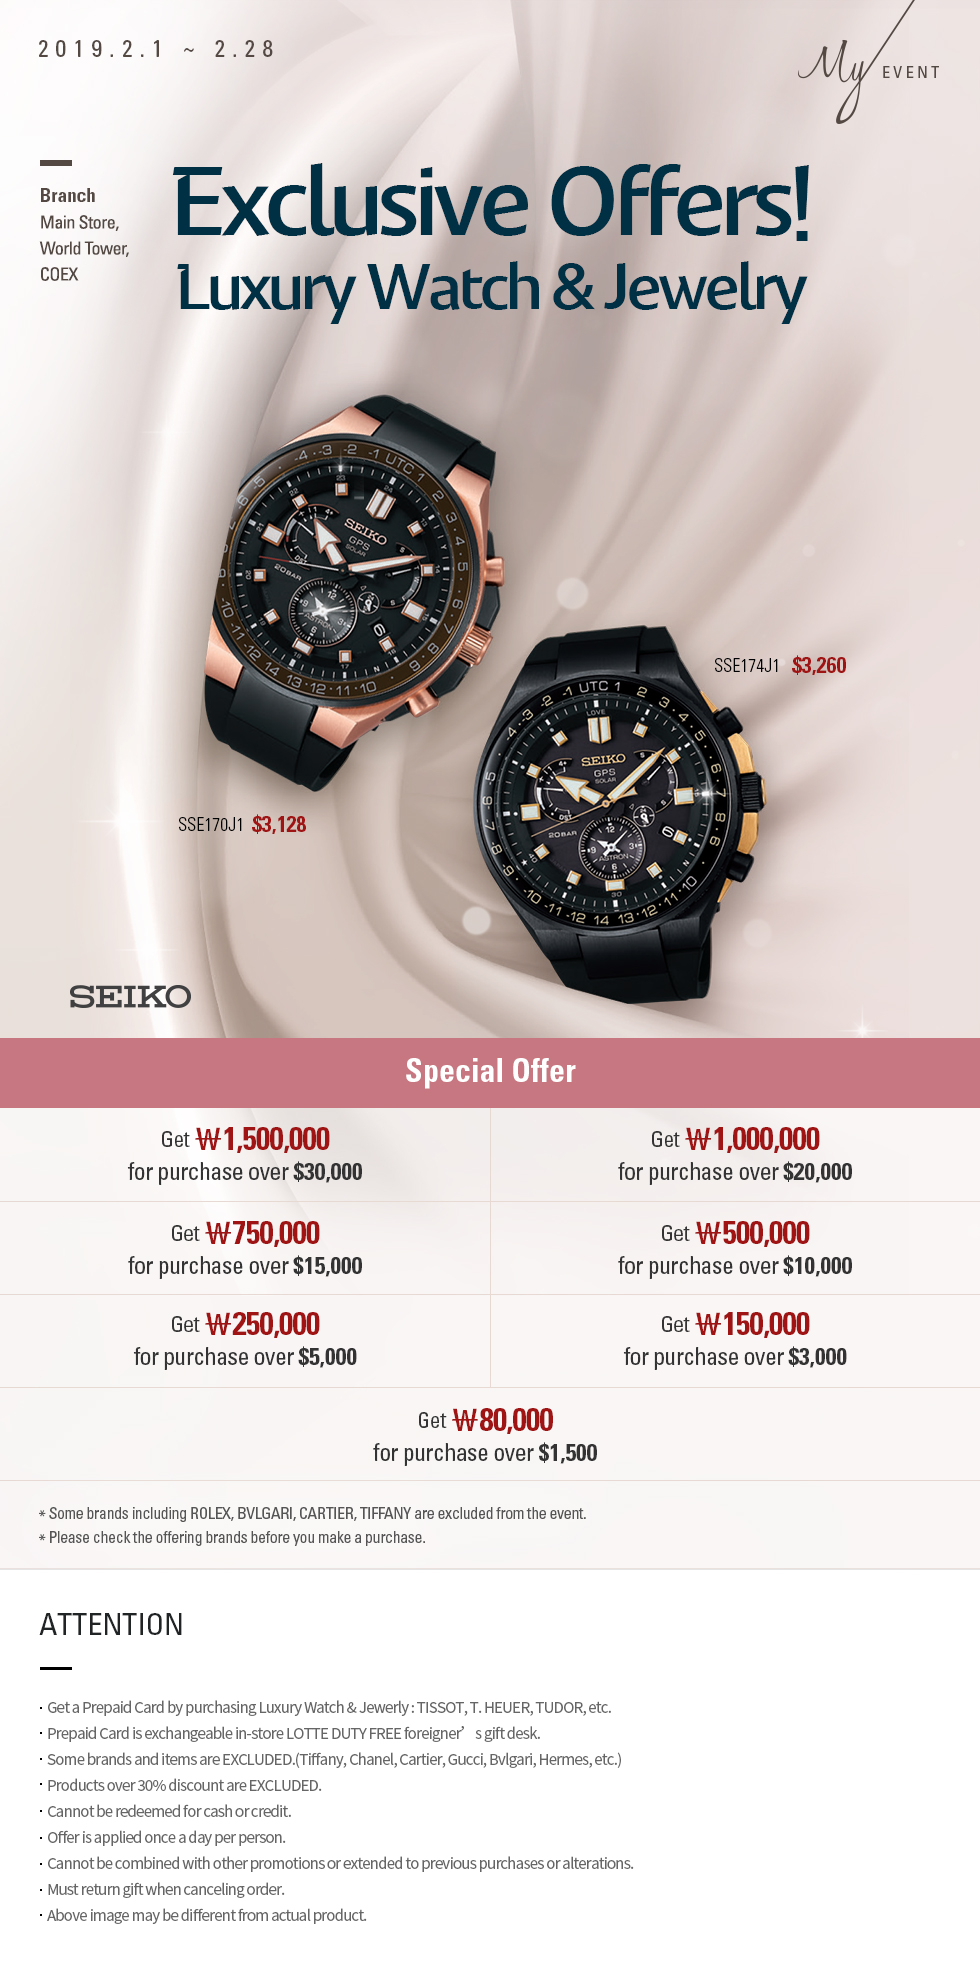 Exclusive Offers! Luxury Watch & Jewelry